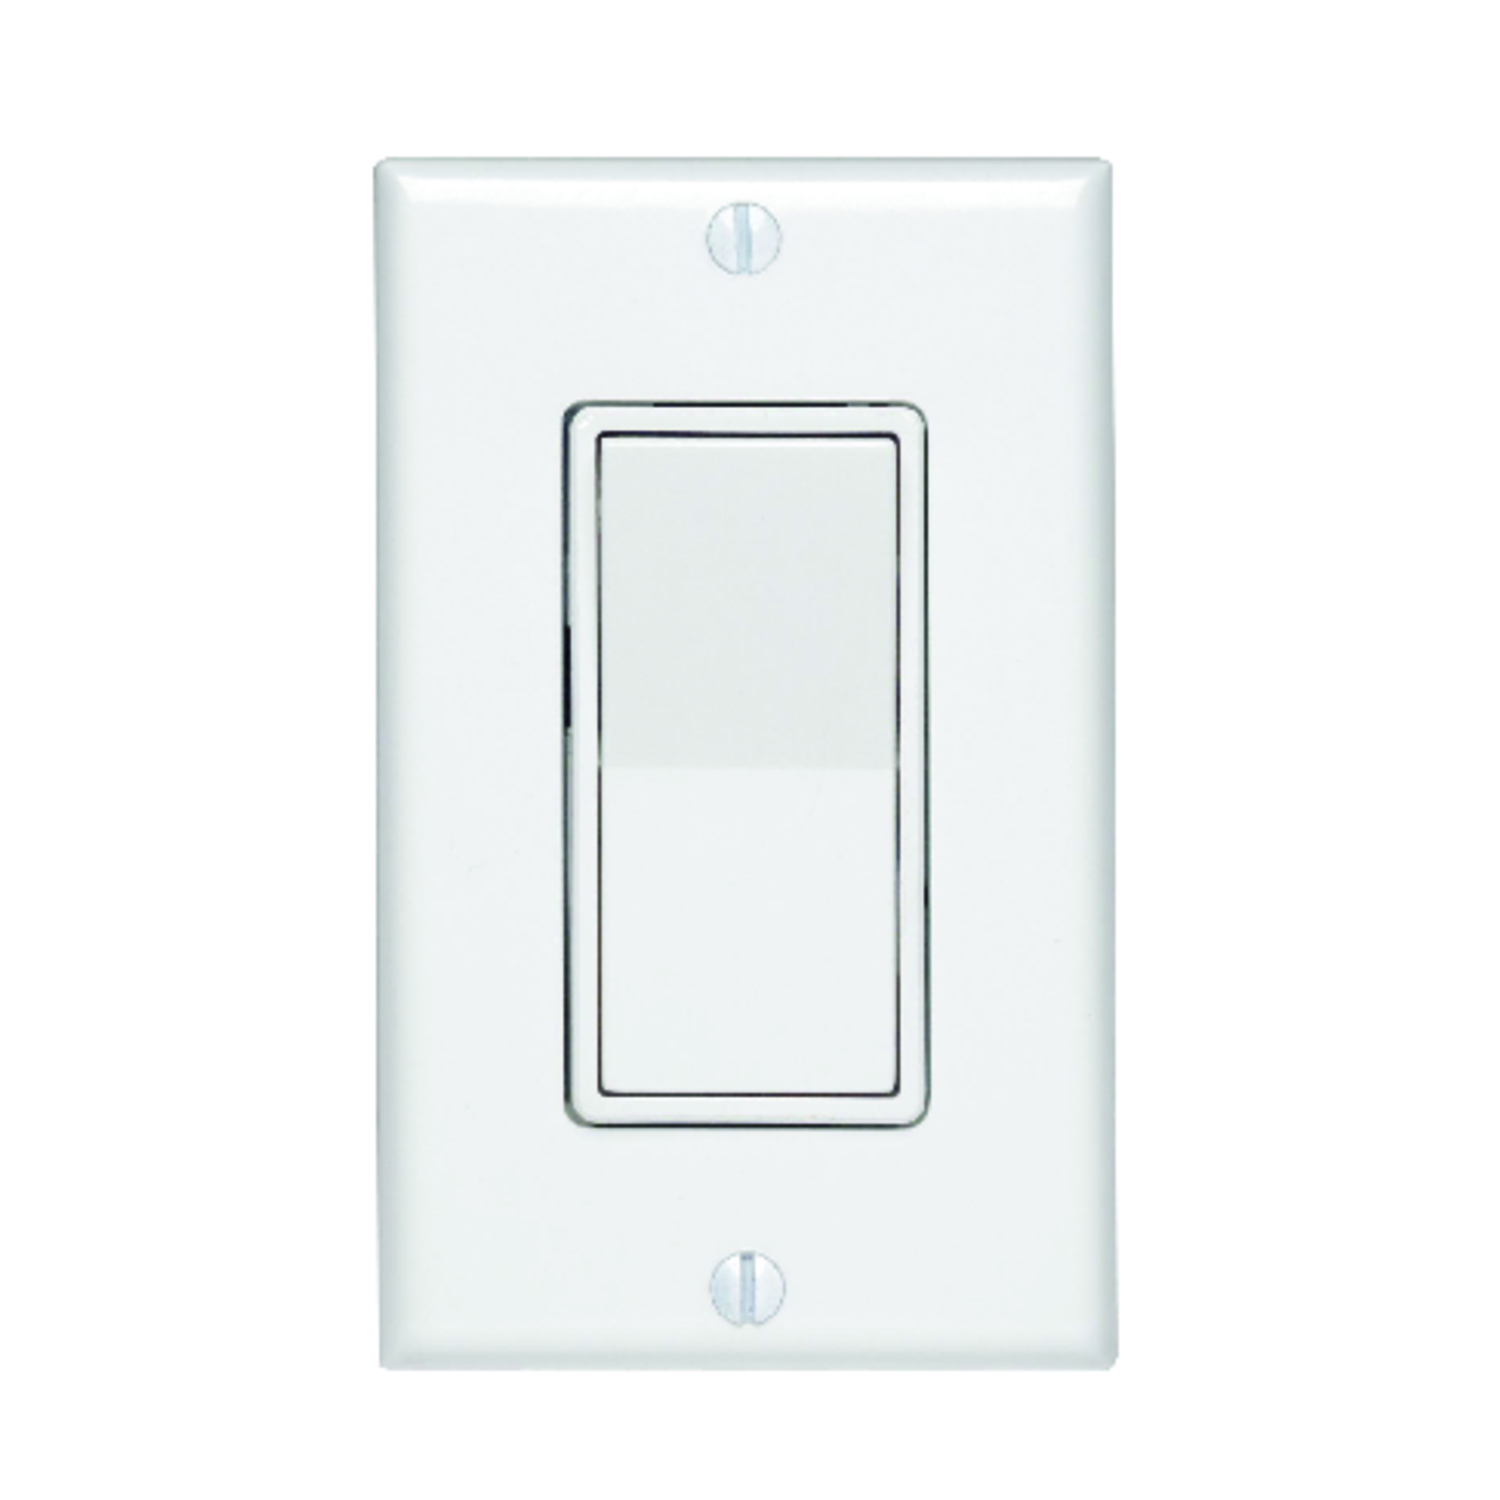 Leviton  15 amps Decora  Switch  Rocker  White  1 pk